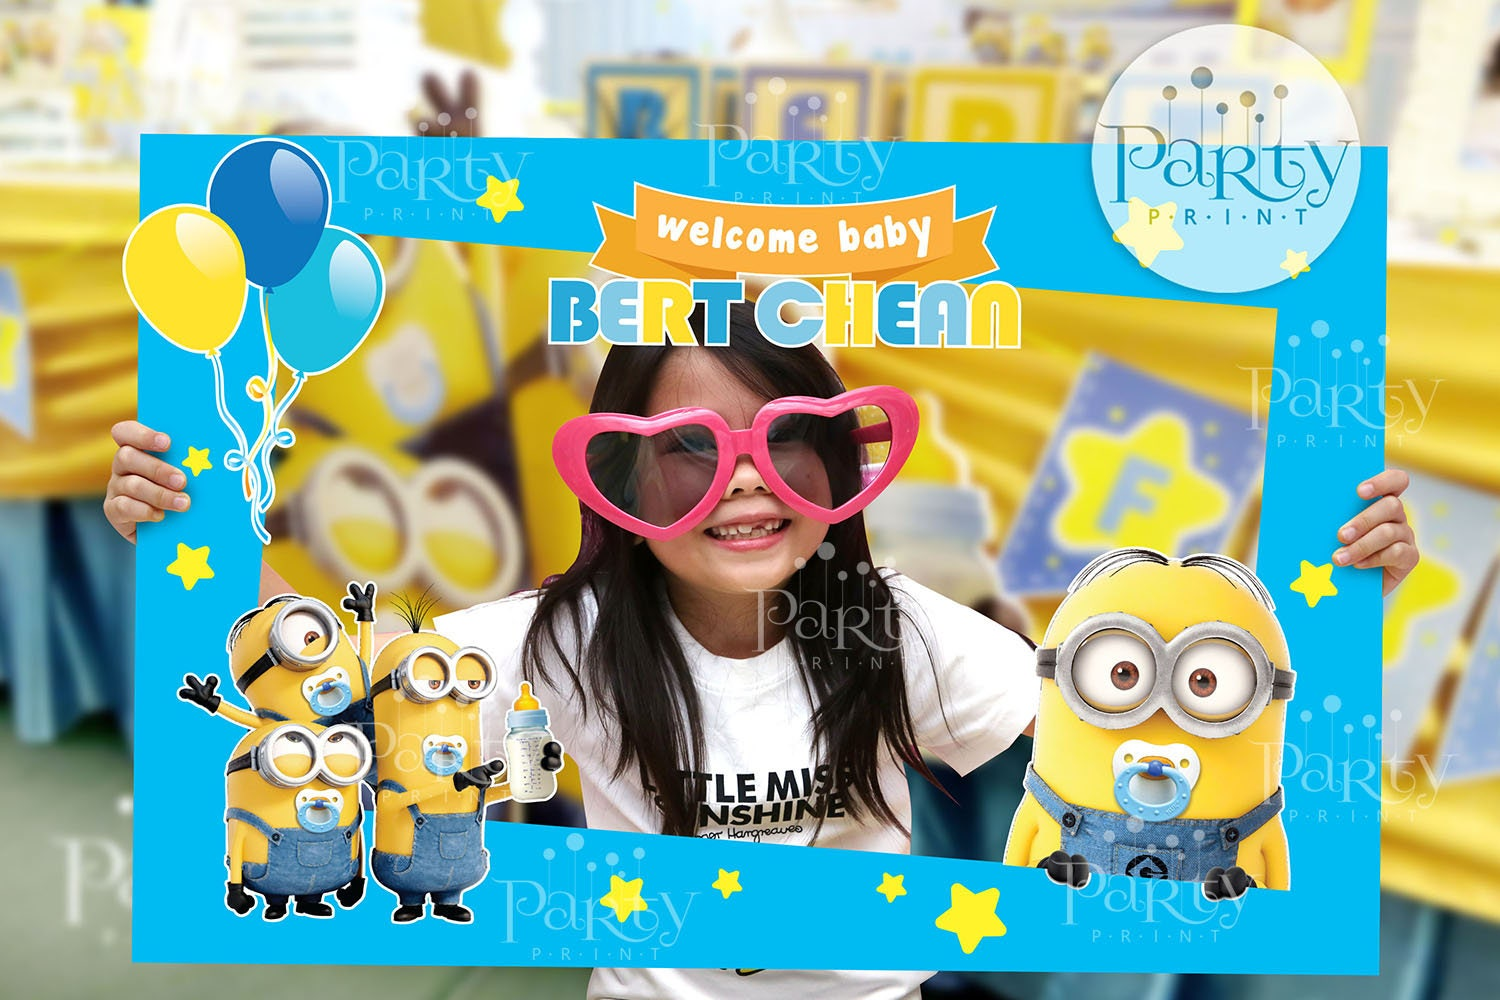 Print it yourself digital copy minions inspired baby shower diy print it yourself digital copy minions inspired baby shower diy photo frame solutioingenieria Gallery